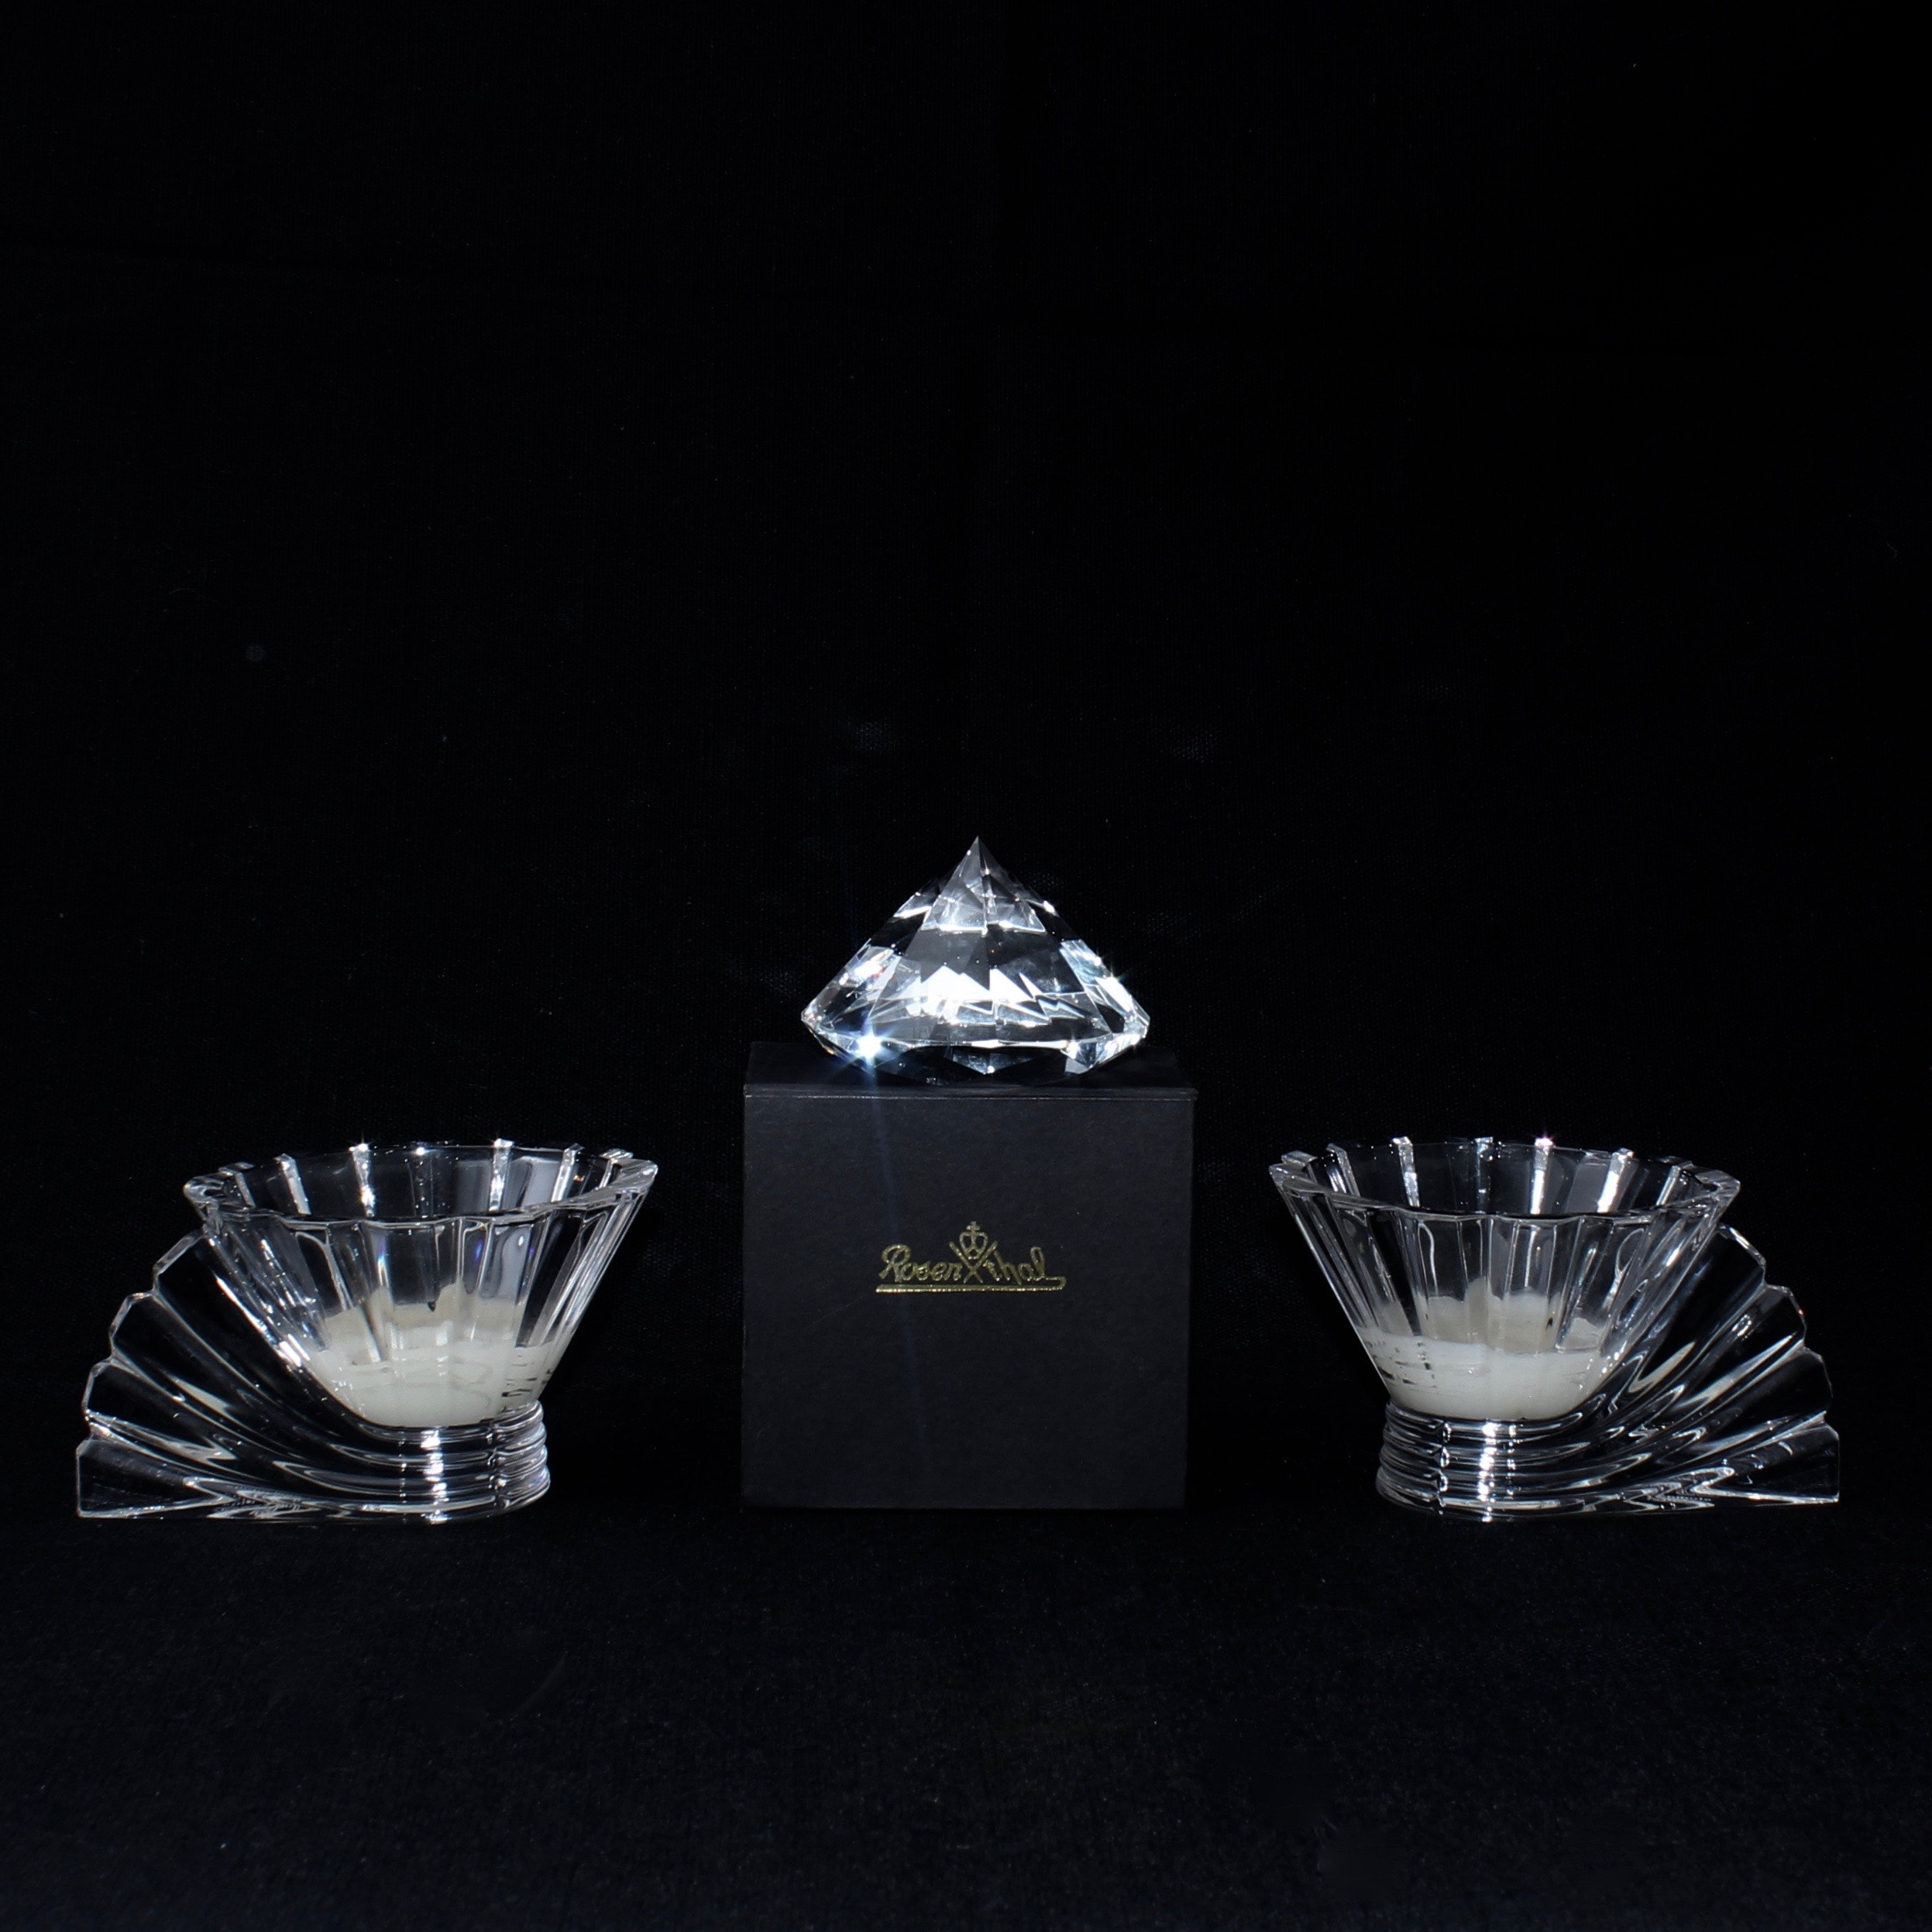 Rosenthal Crystal Paperweight and Votives